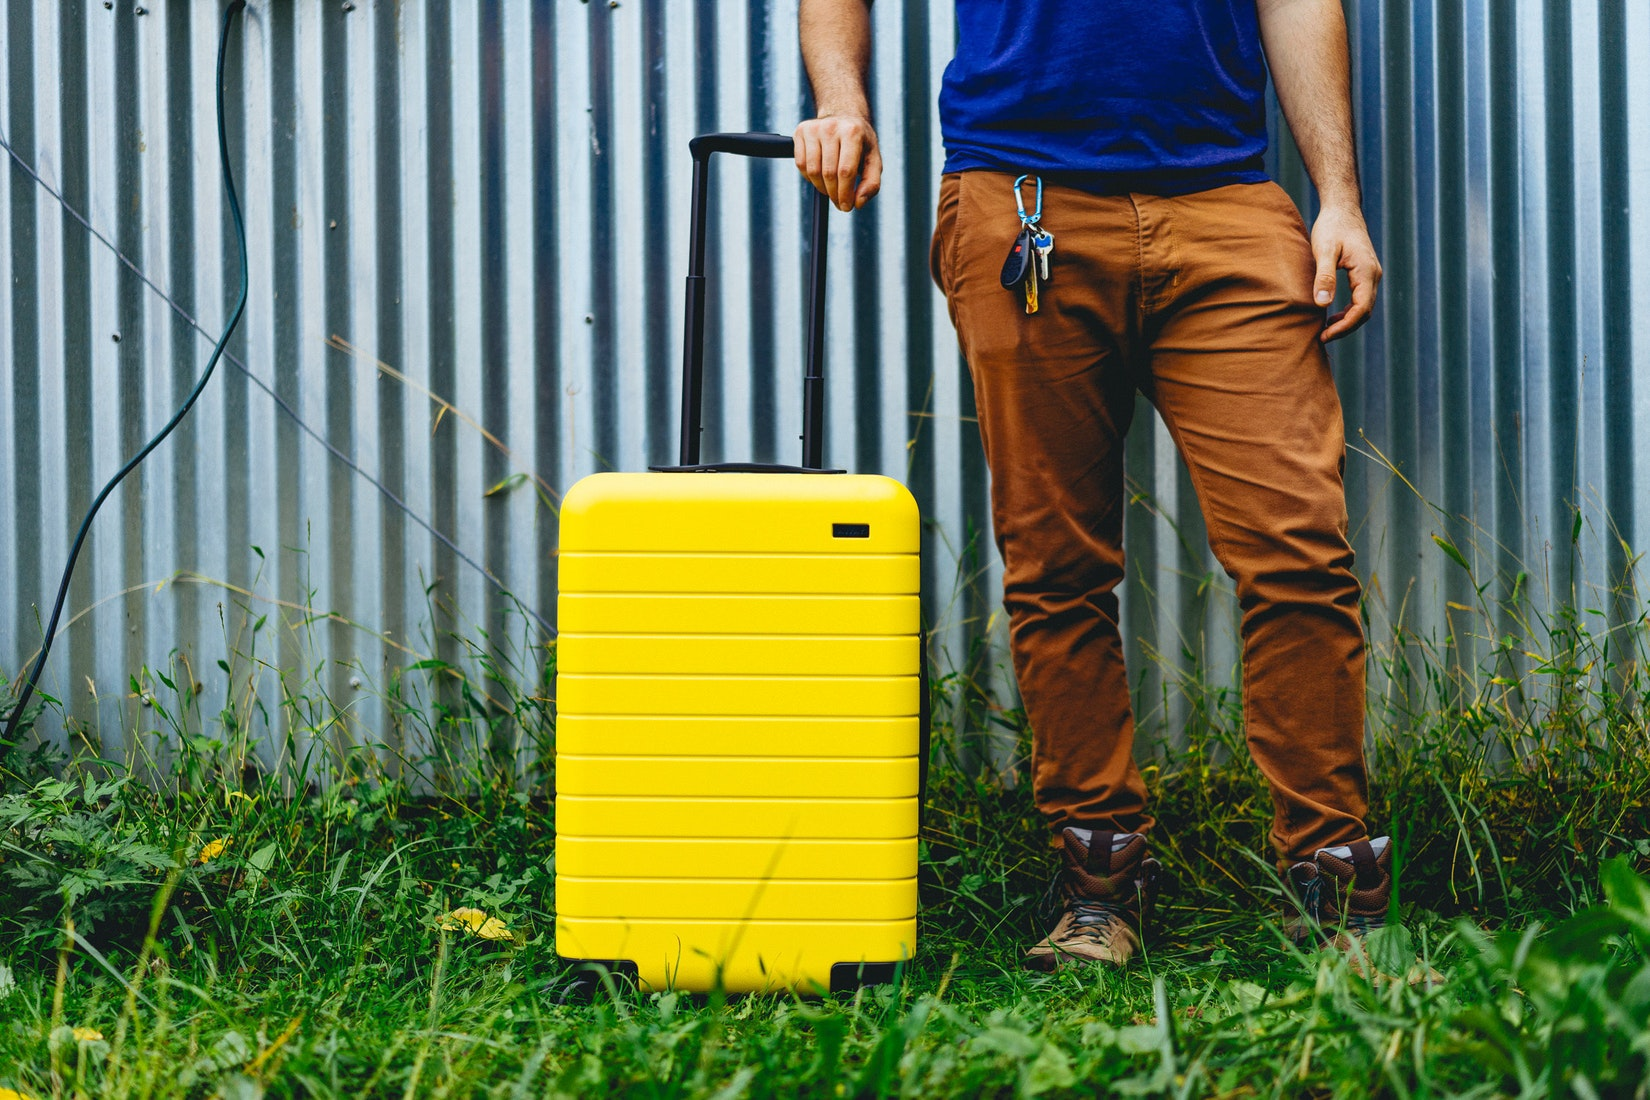 Man against a metal siding next to a yellow suitcase